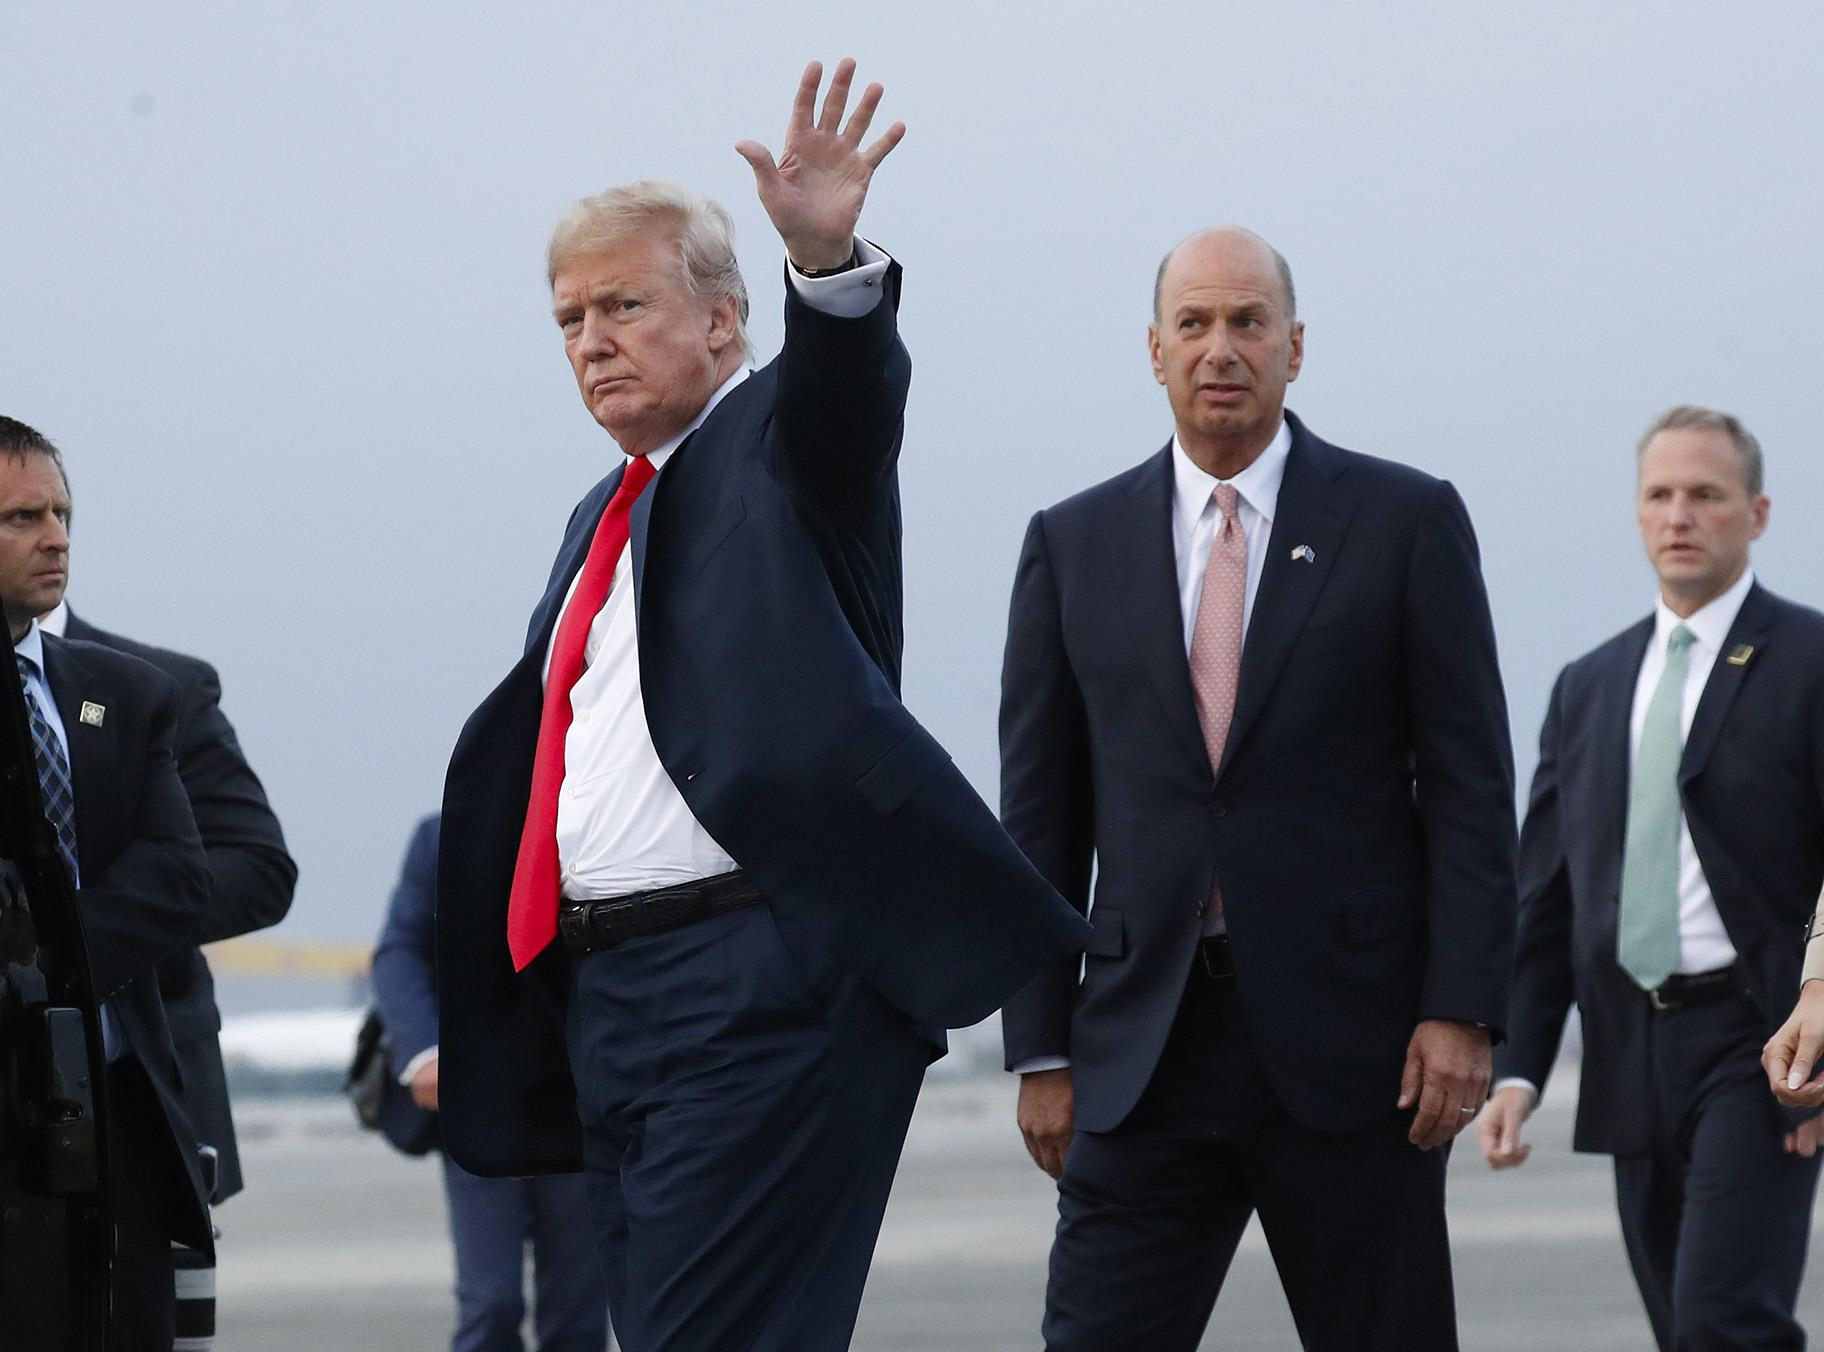 In this Tuesday, July 10, 2018, file photo, President Donald Trump is joined by Gordon Sondland, the U.S. ambassador to the European Union, second from right, as he arrives at Melsbroek Air Base, in Brussels, Belgium. (AP Photo / Pablo Martinez Monsivais, File)